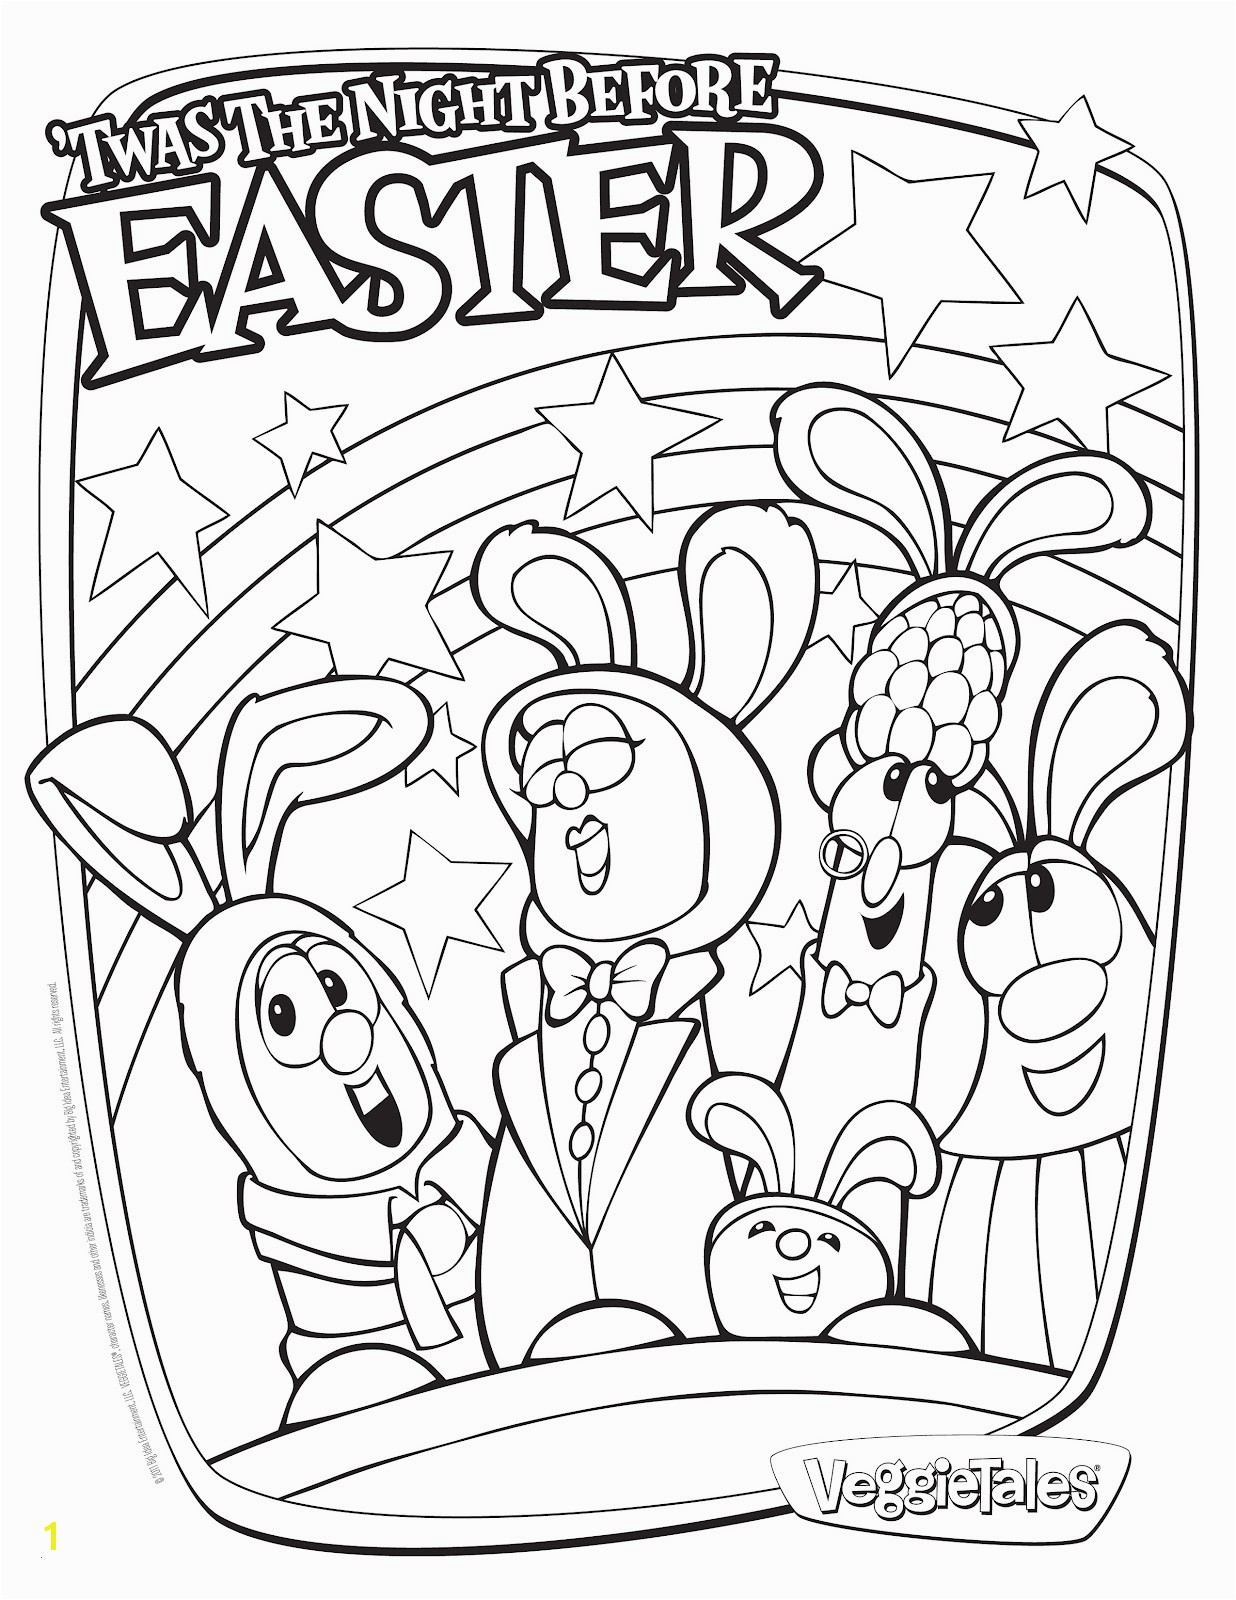 Jesus Loves Me Coloring Page Jesus with Children Coloring Pages Coloring Pages Jesus Amazing